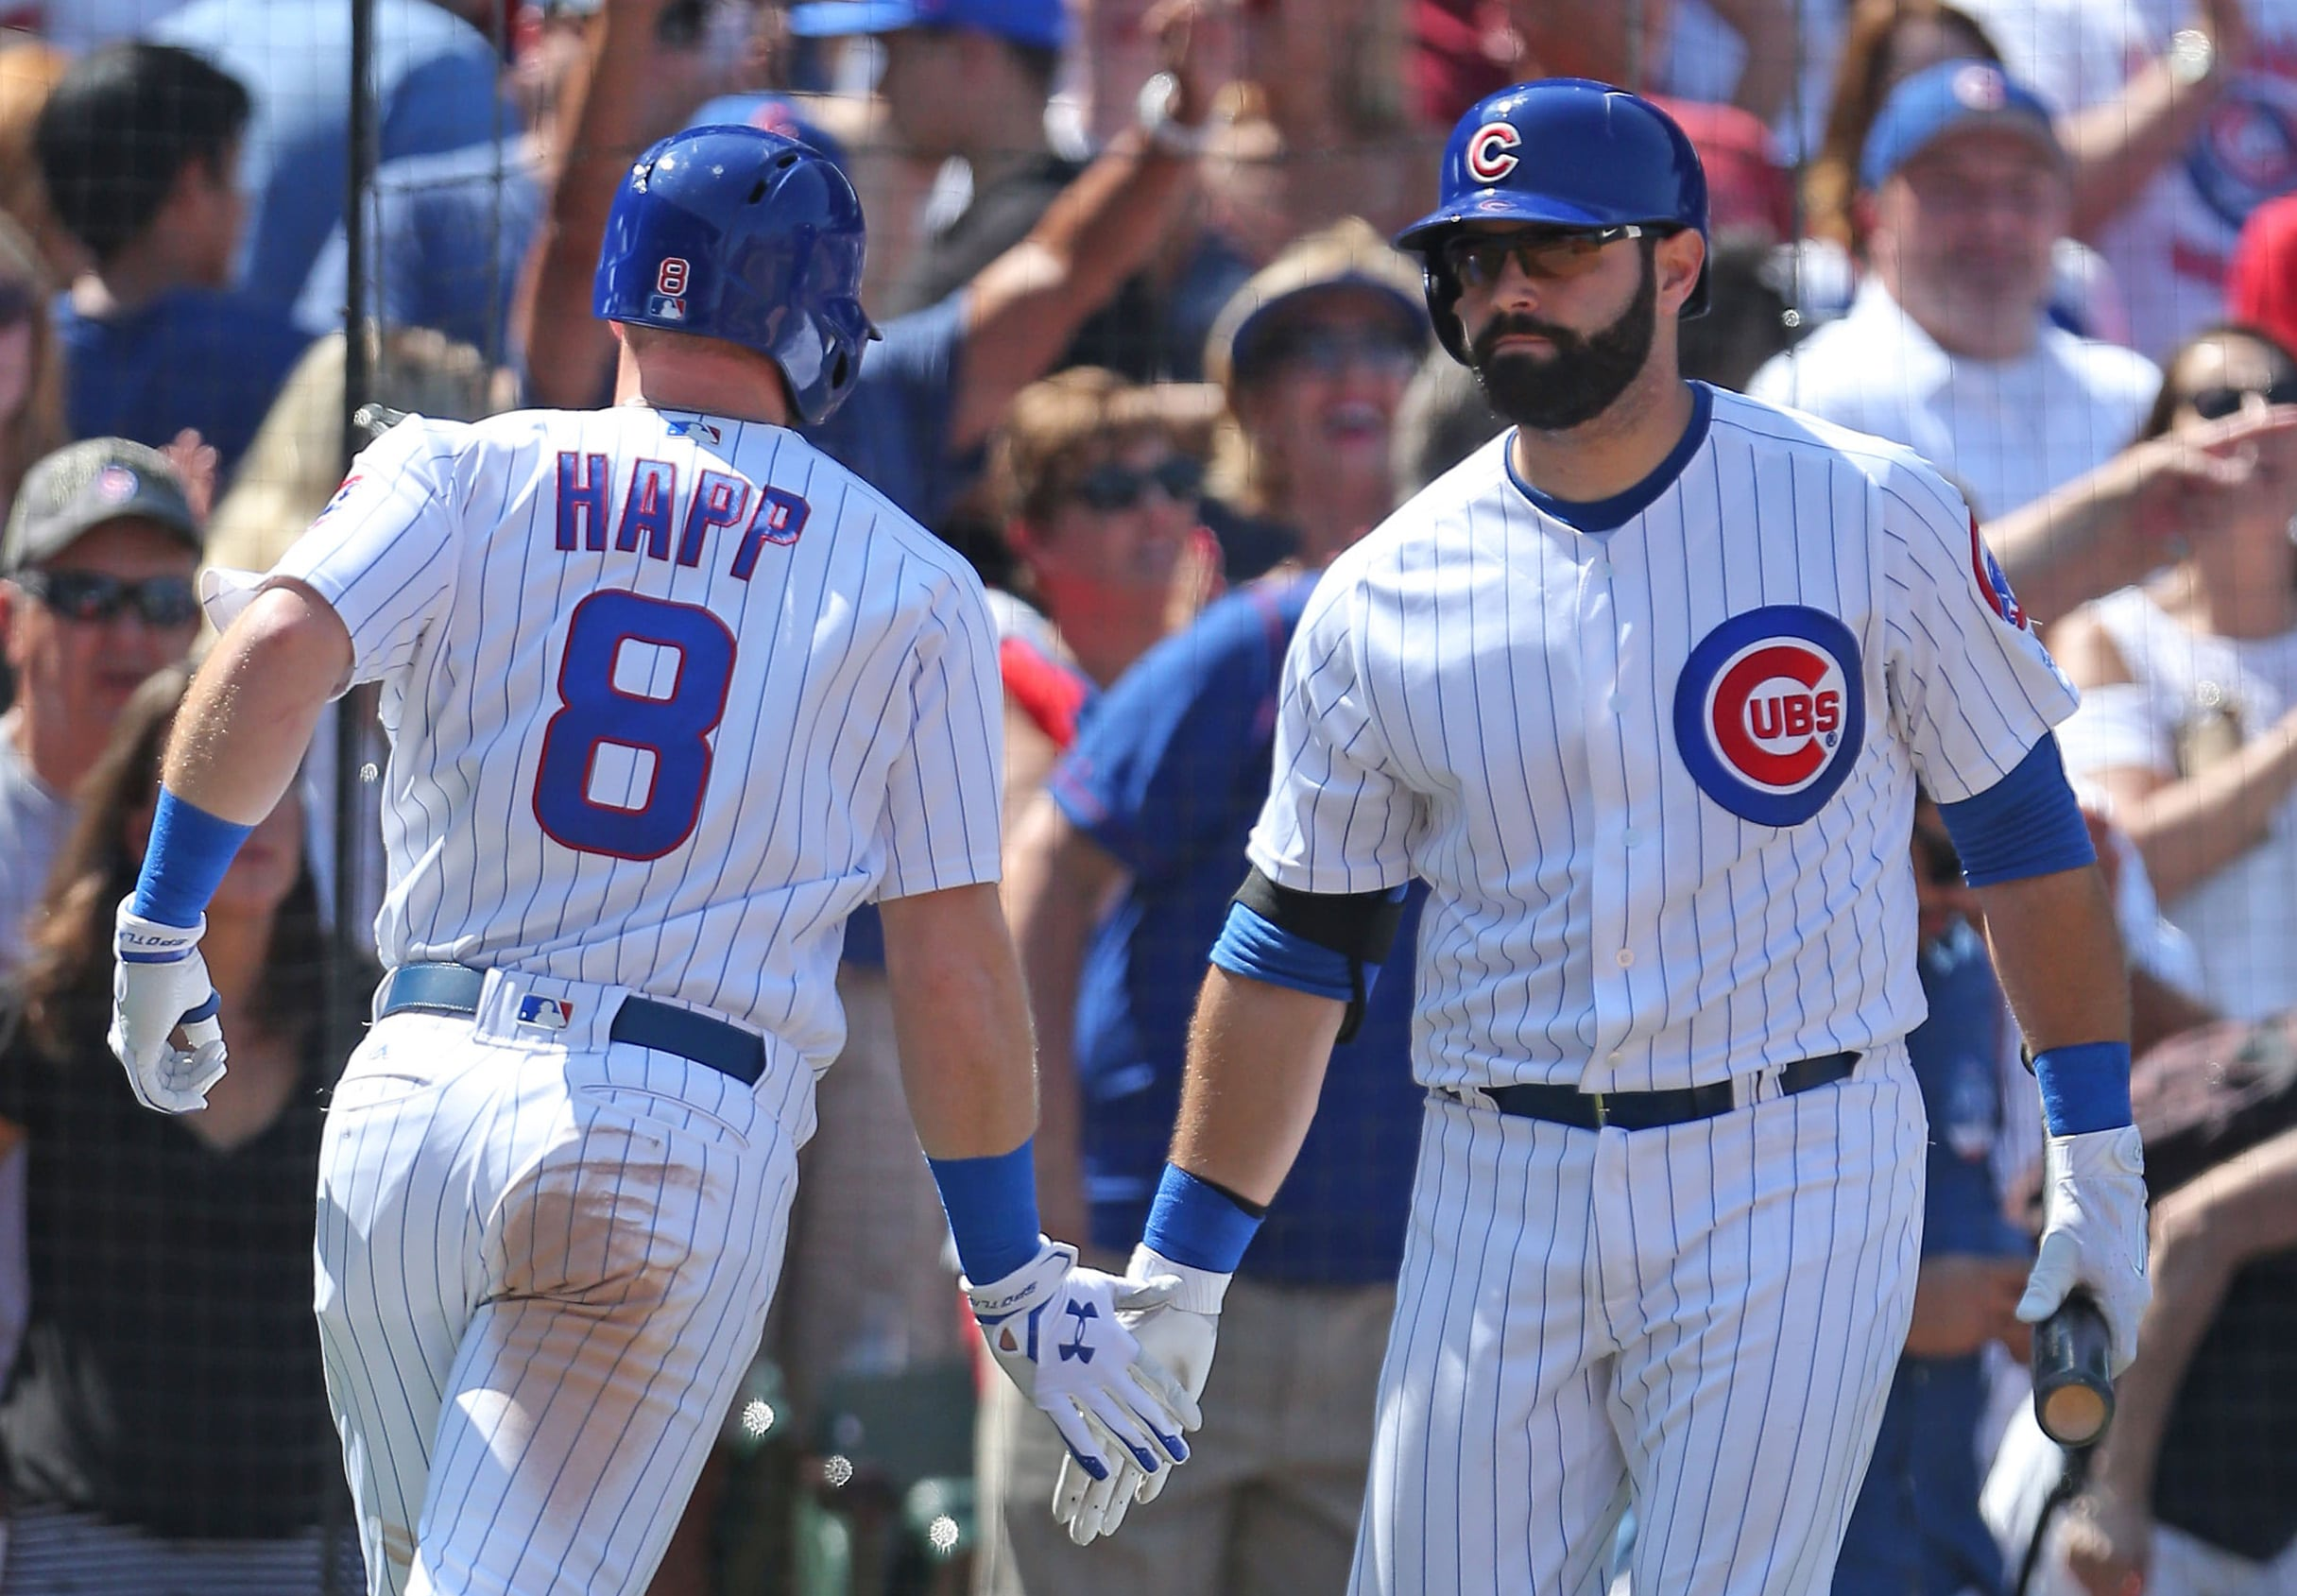 Major League Baseball scores: Cubs defeat Blue Jays 4-3 at Wrigley